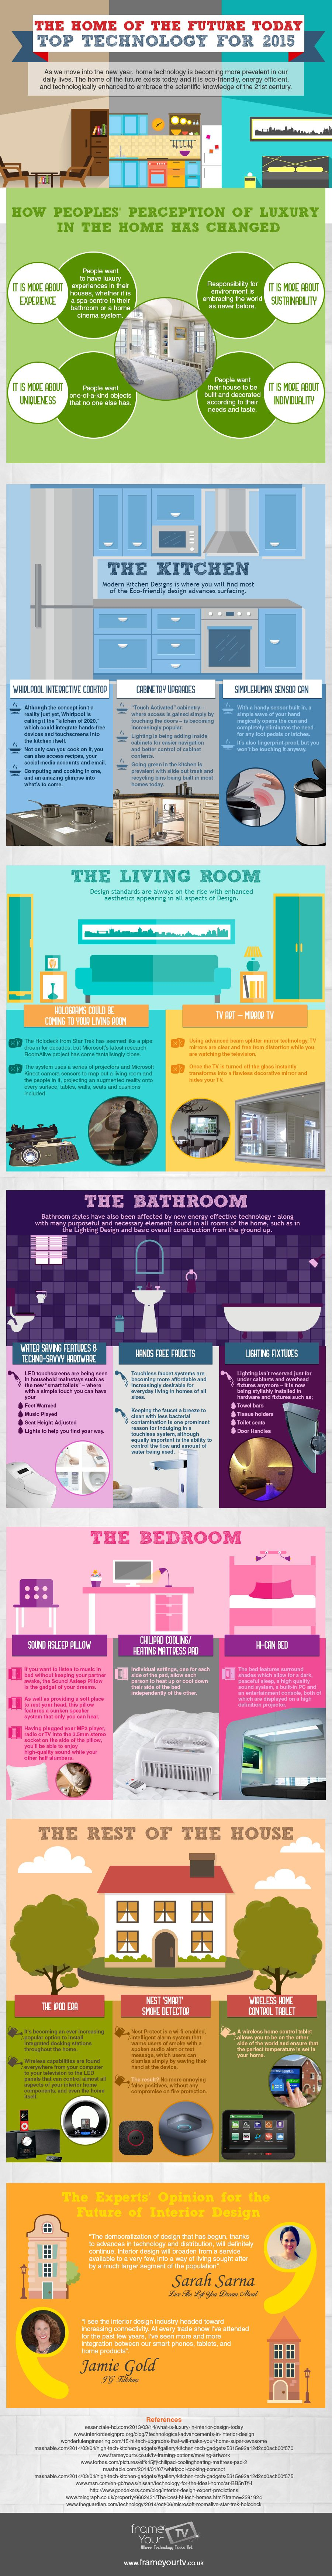 The Home of the Future Top Technology for 2015 #infographic